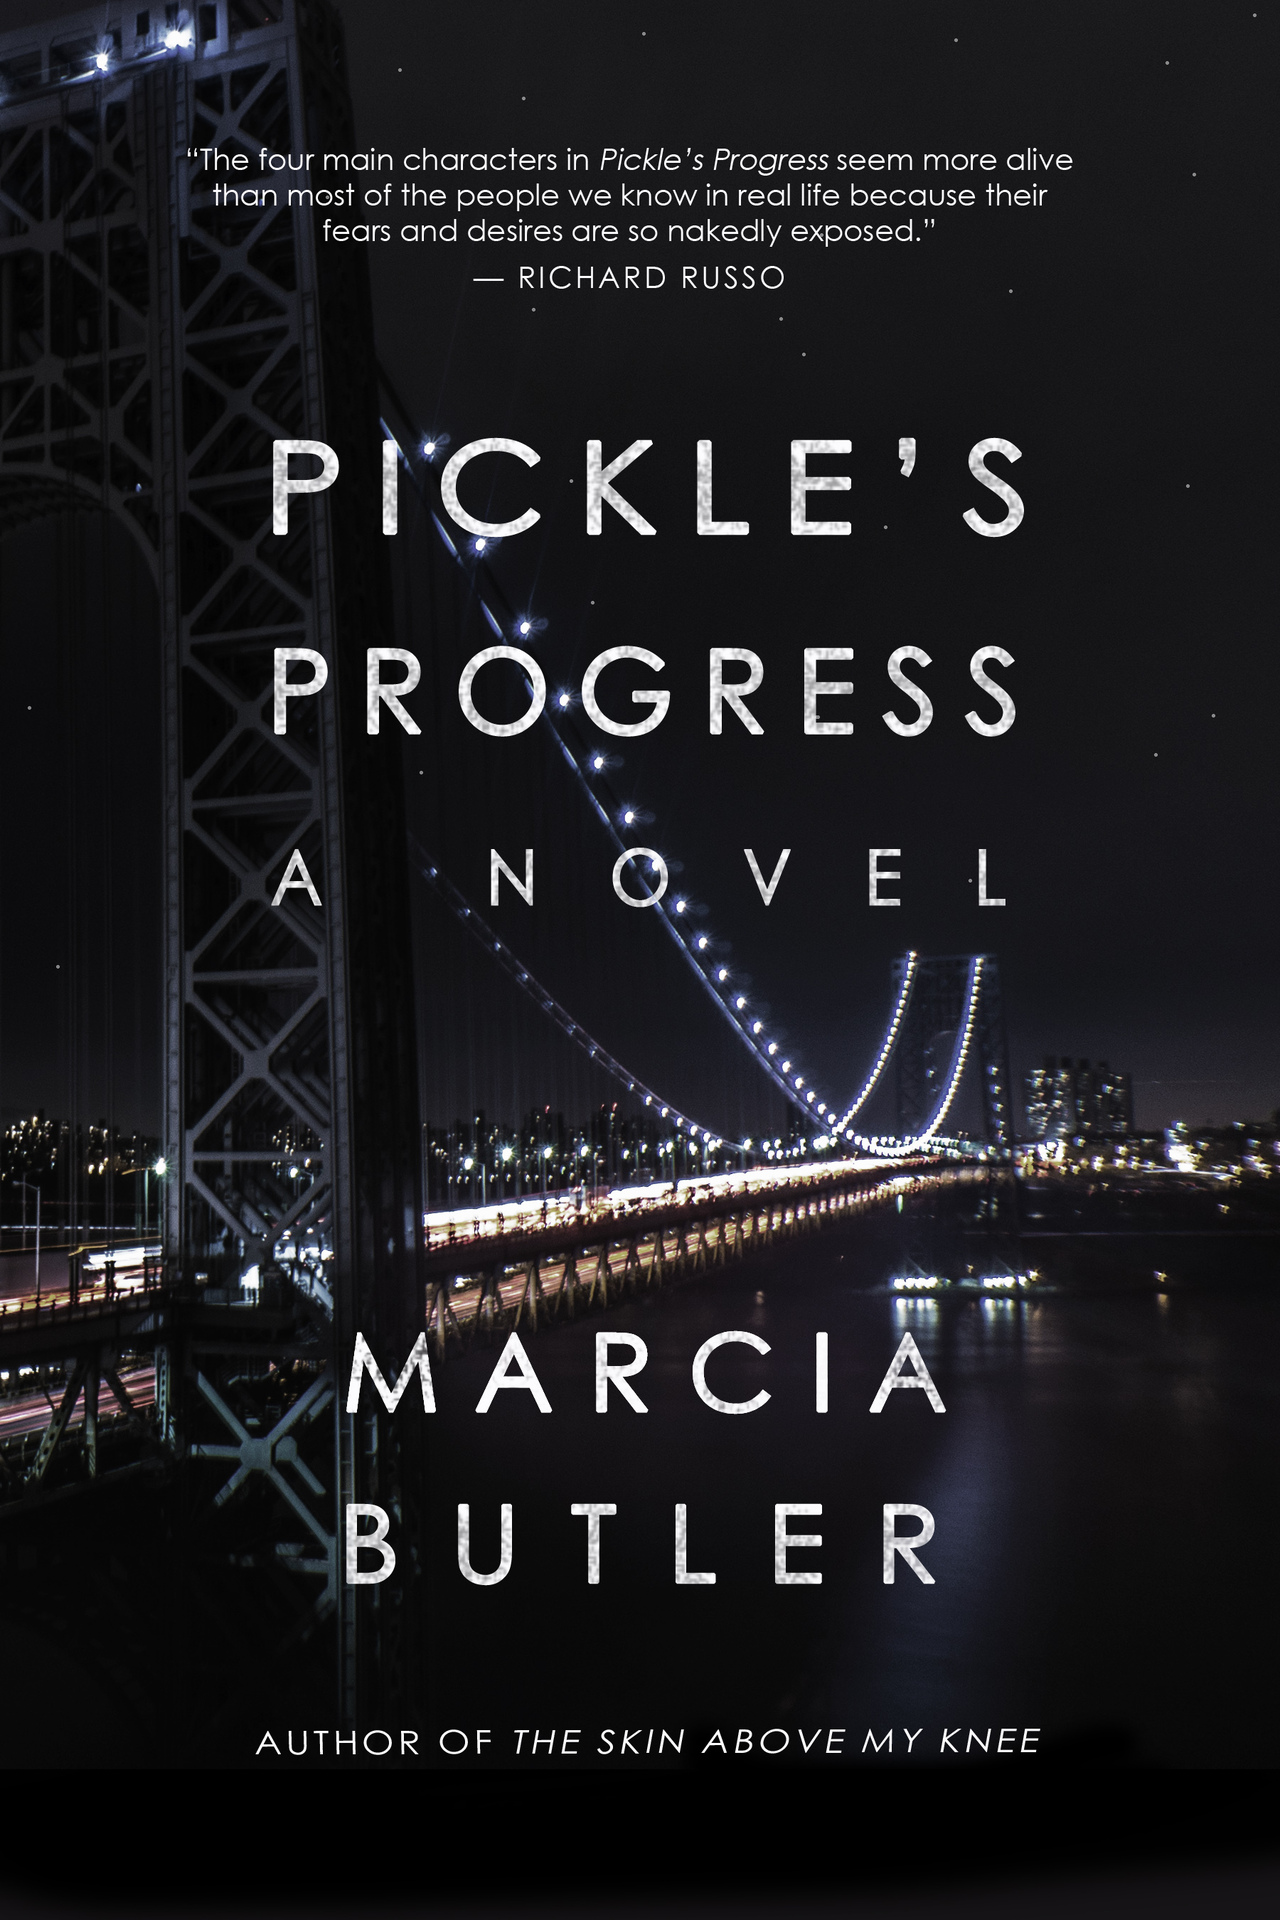 Final pickle's progress cover   marcia butler